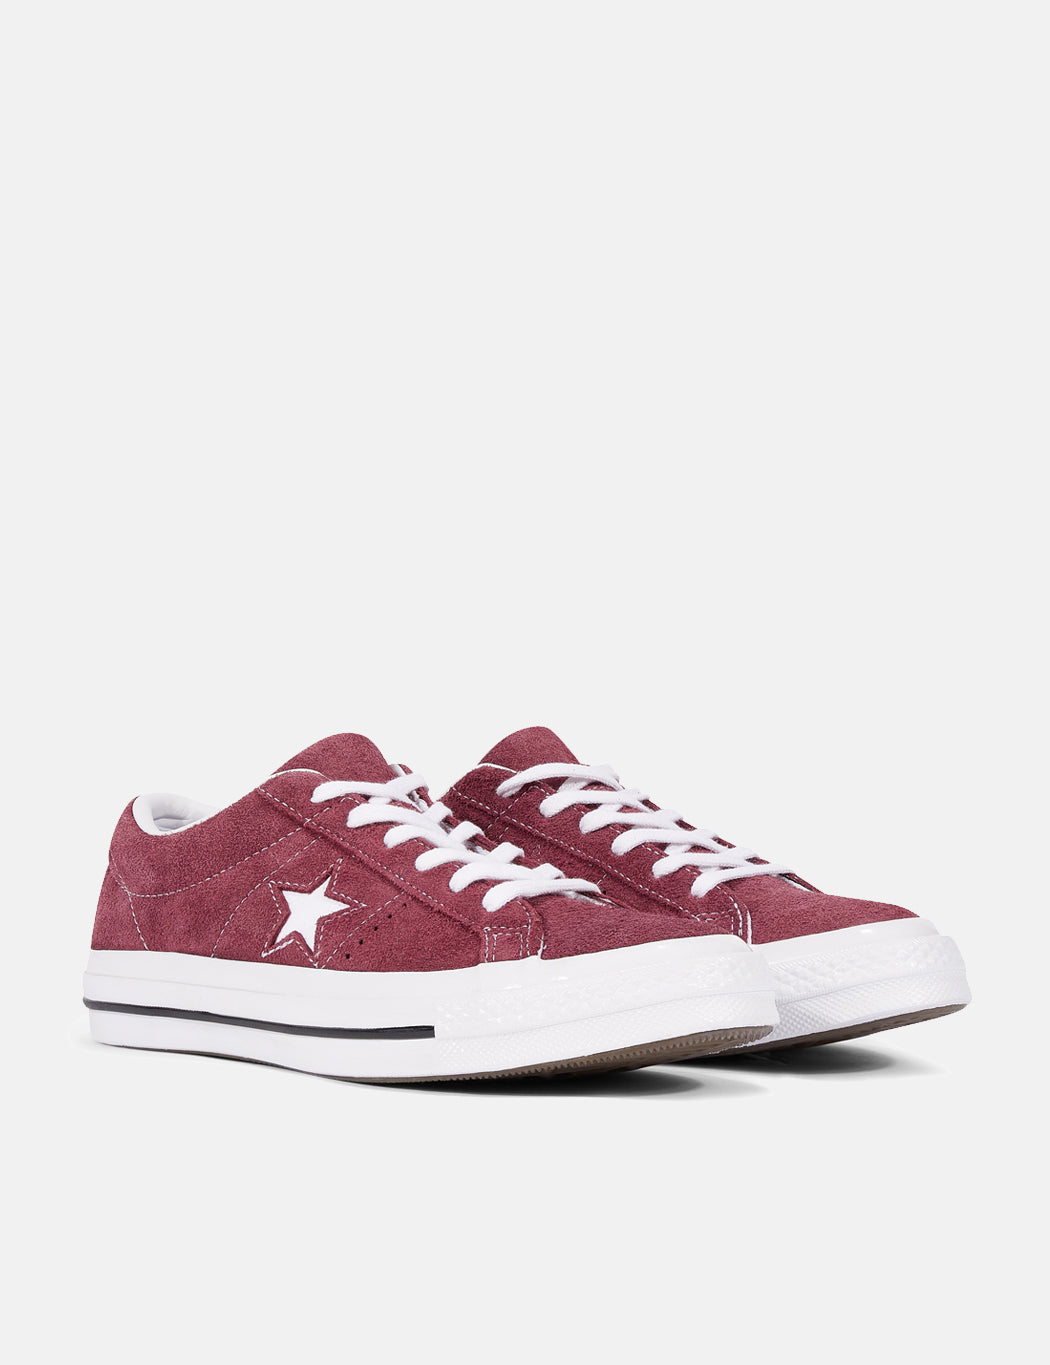 281b54f622b0 ... Converse One Star Ox Low Suede (158370C) - Deep Bordeaux White